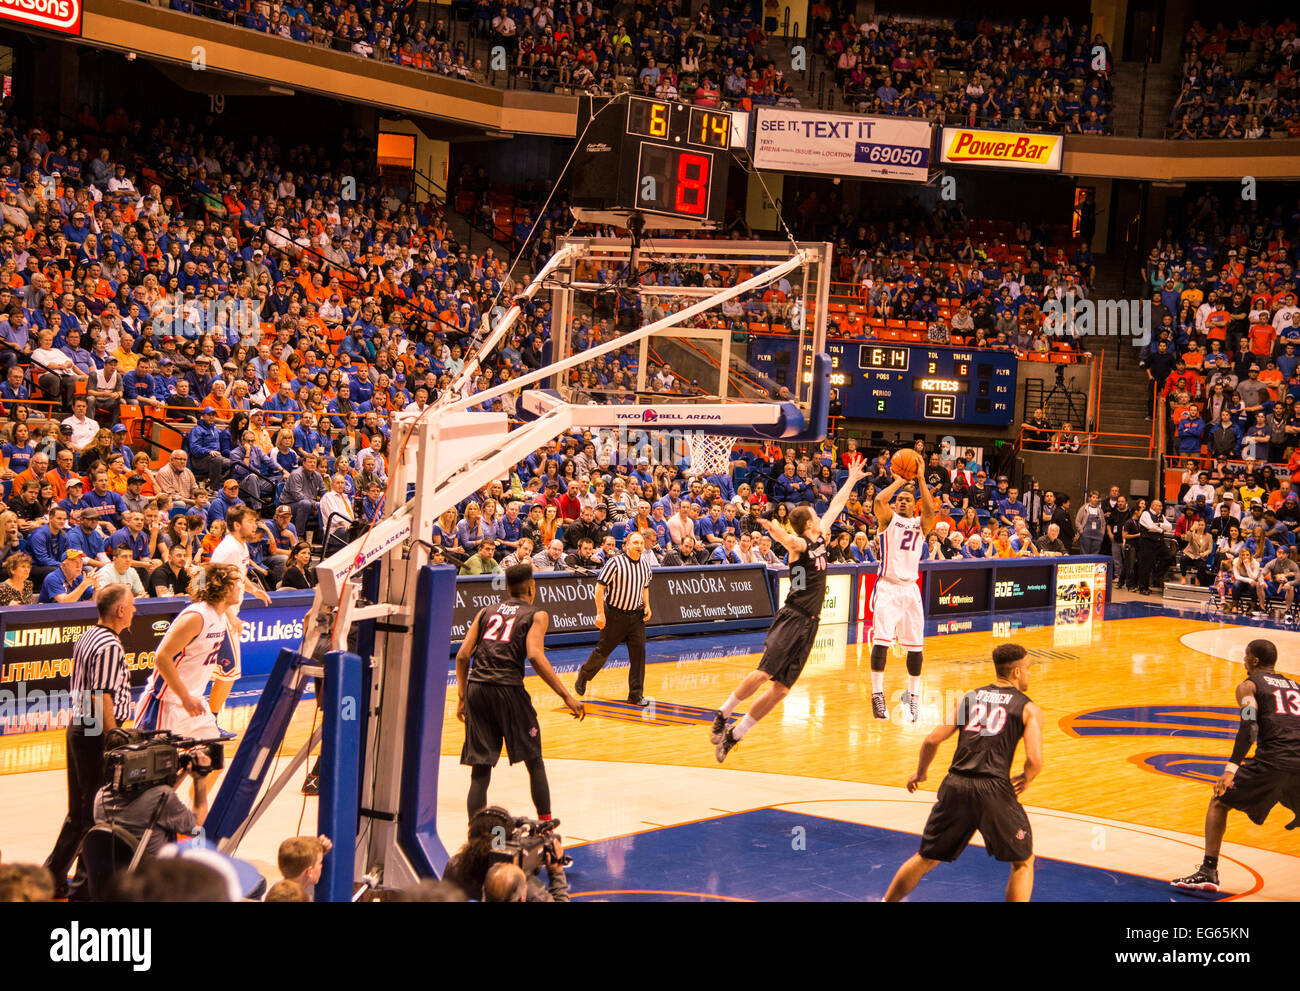 Boise State Basketball game against San Diego State in Taco Bell Arena. Bose, Idaho - Stock Image